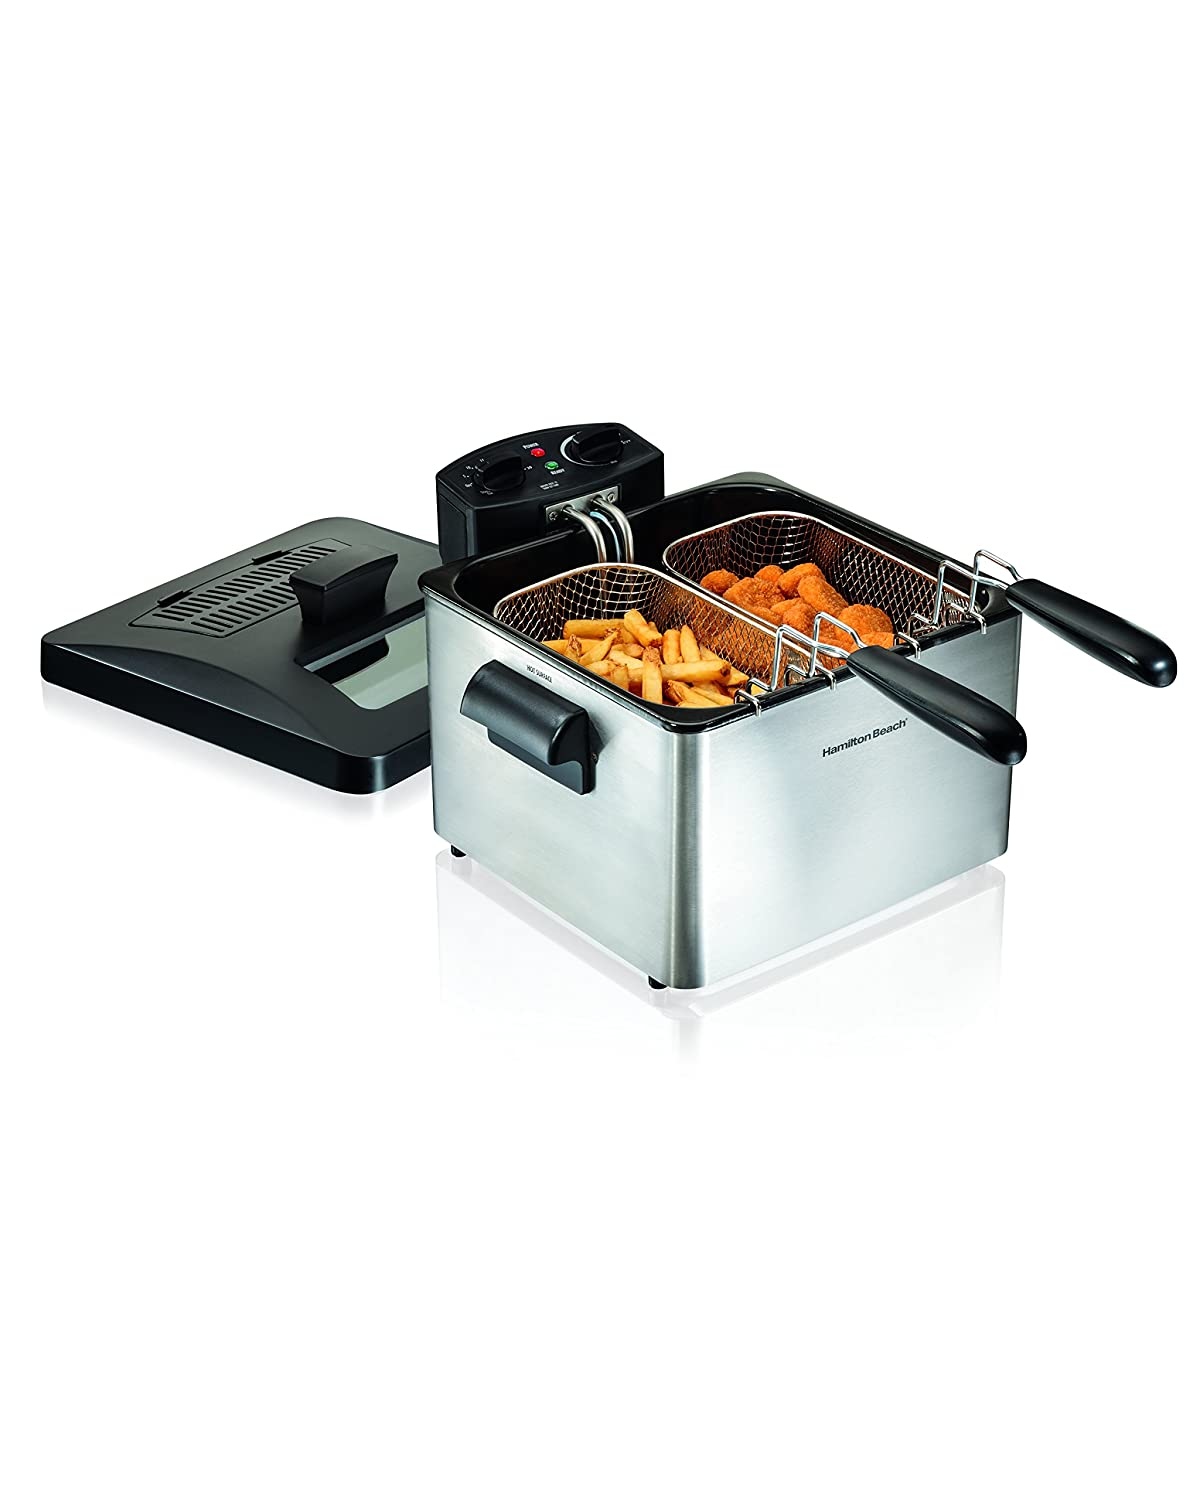 Hamilton Beach Electric Deep Fryer, 4.5-Liter Oil Capacity (35036)